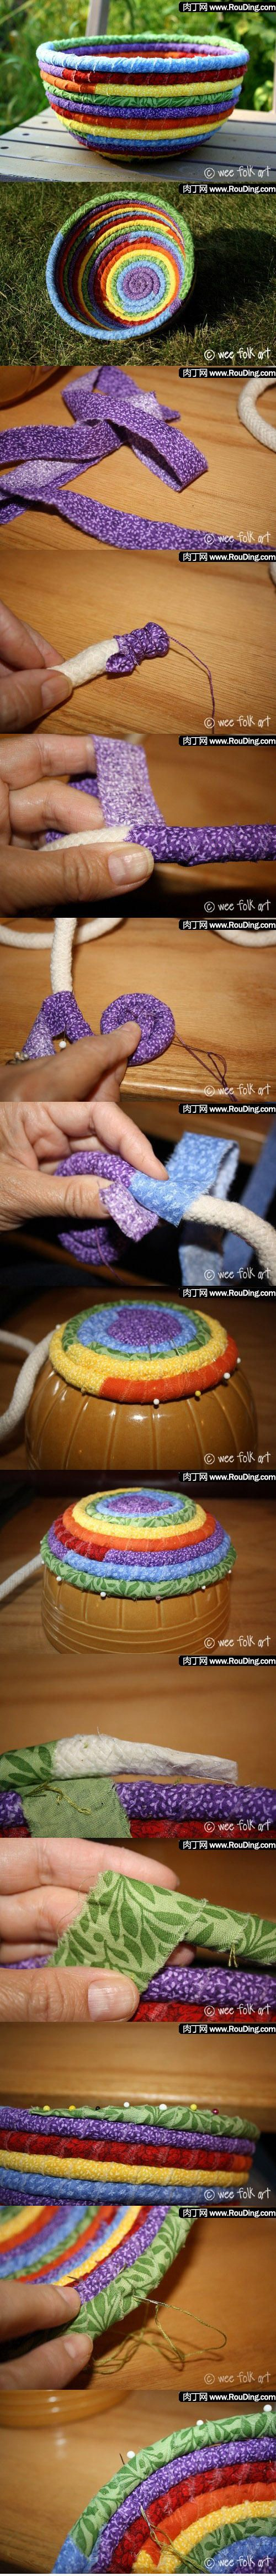 How to make a decorative fabric bowl.Crafts Ideas, Diy Crafts, Cute Ideas, Fabrics Scrap, Ropes, Fabrics Baskets, Scrap Fabrics, Coil Basket, Fabrics Bowls